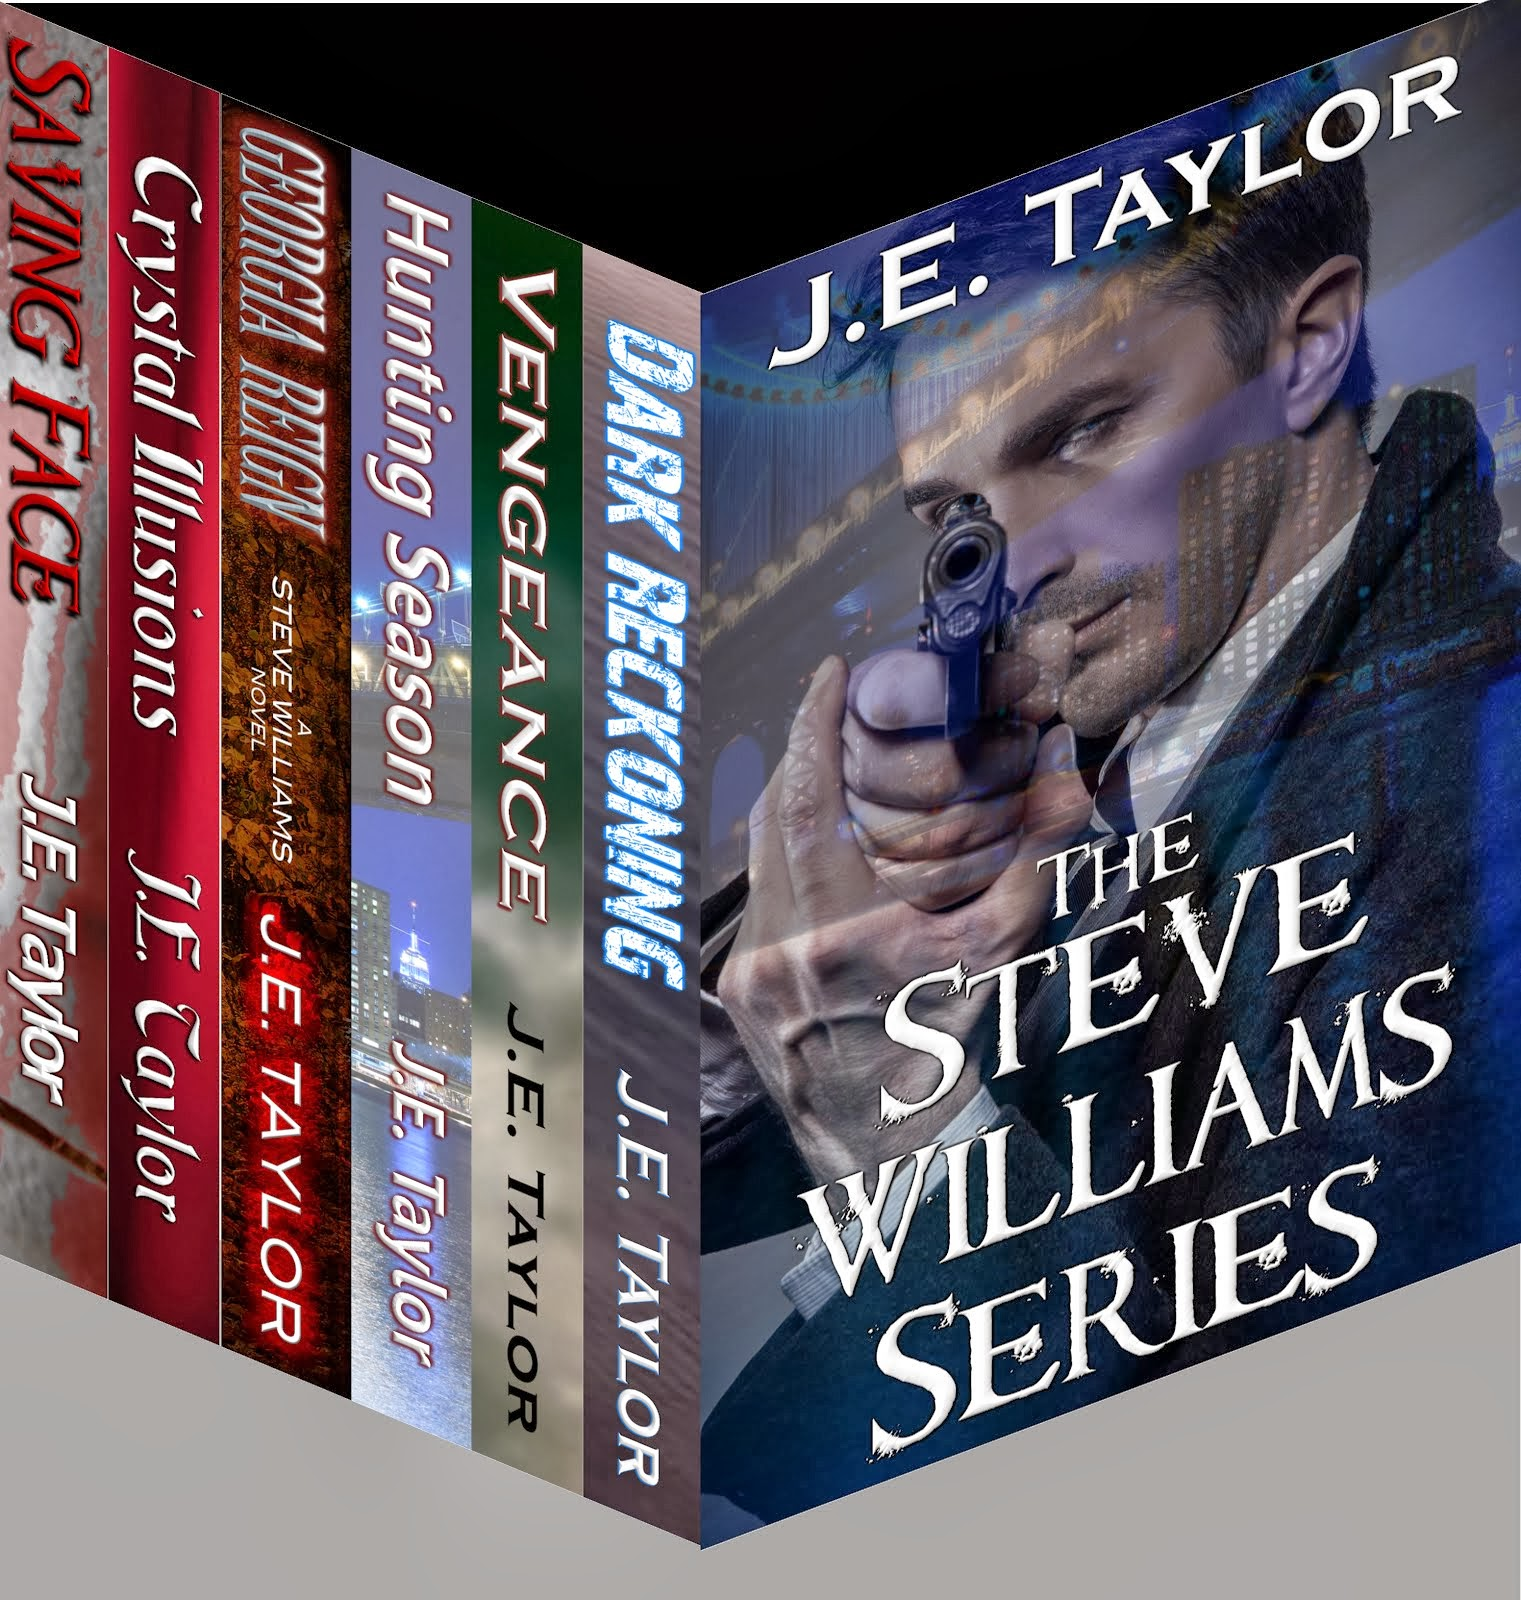 Steve Williams Series Box Set